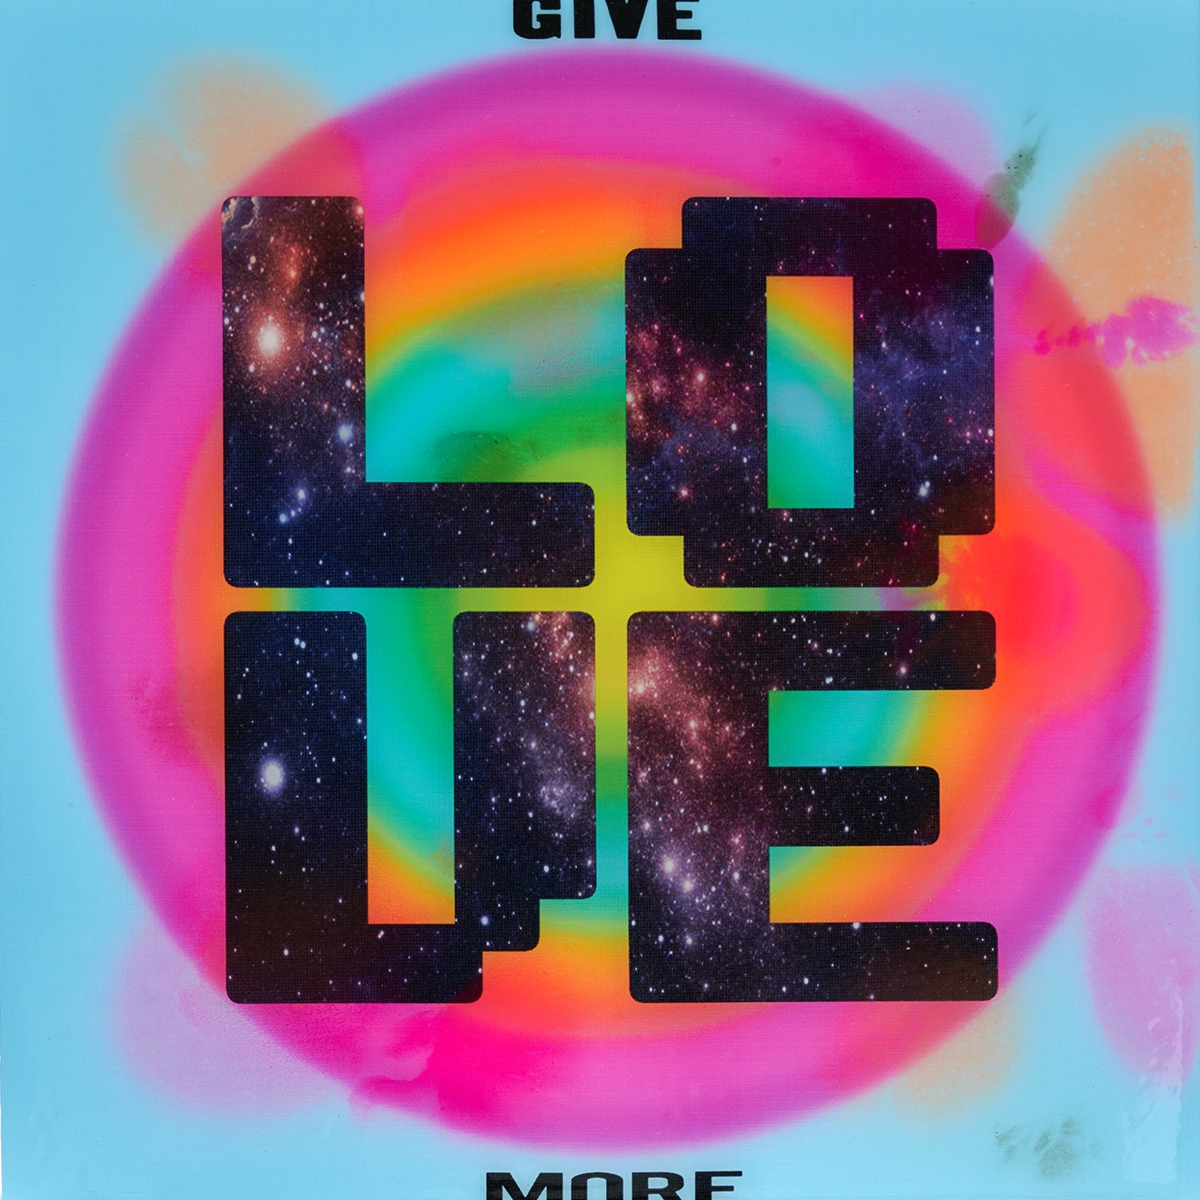 Give Love - Epoxy - 2020